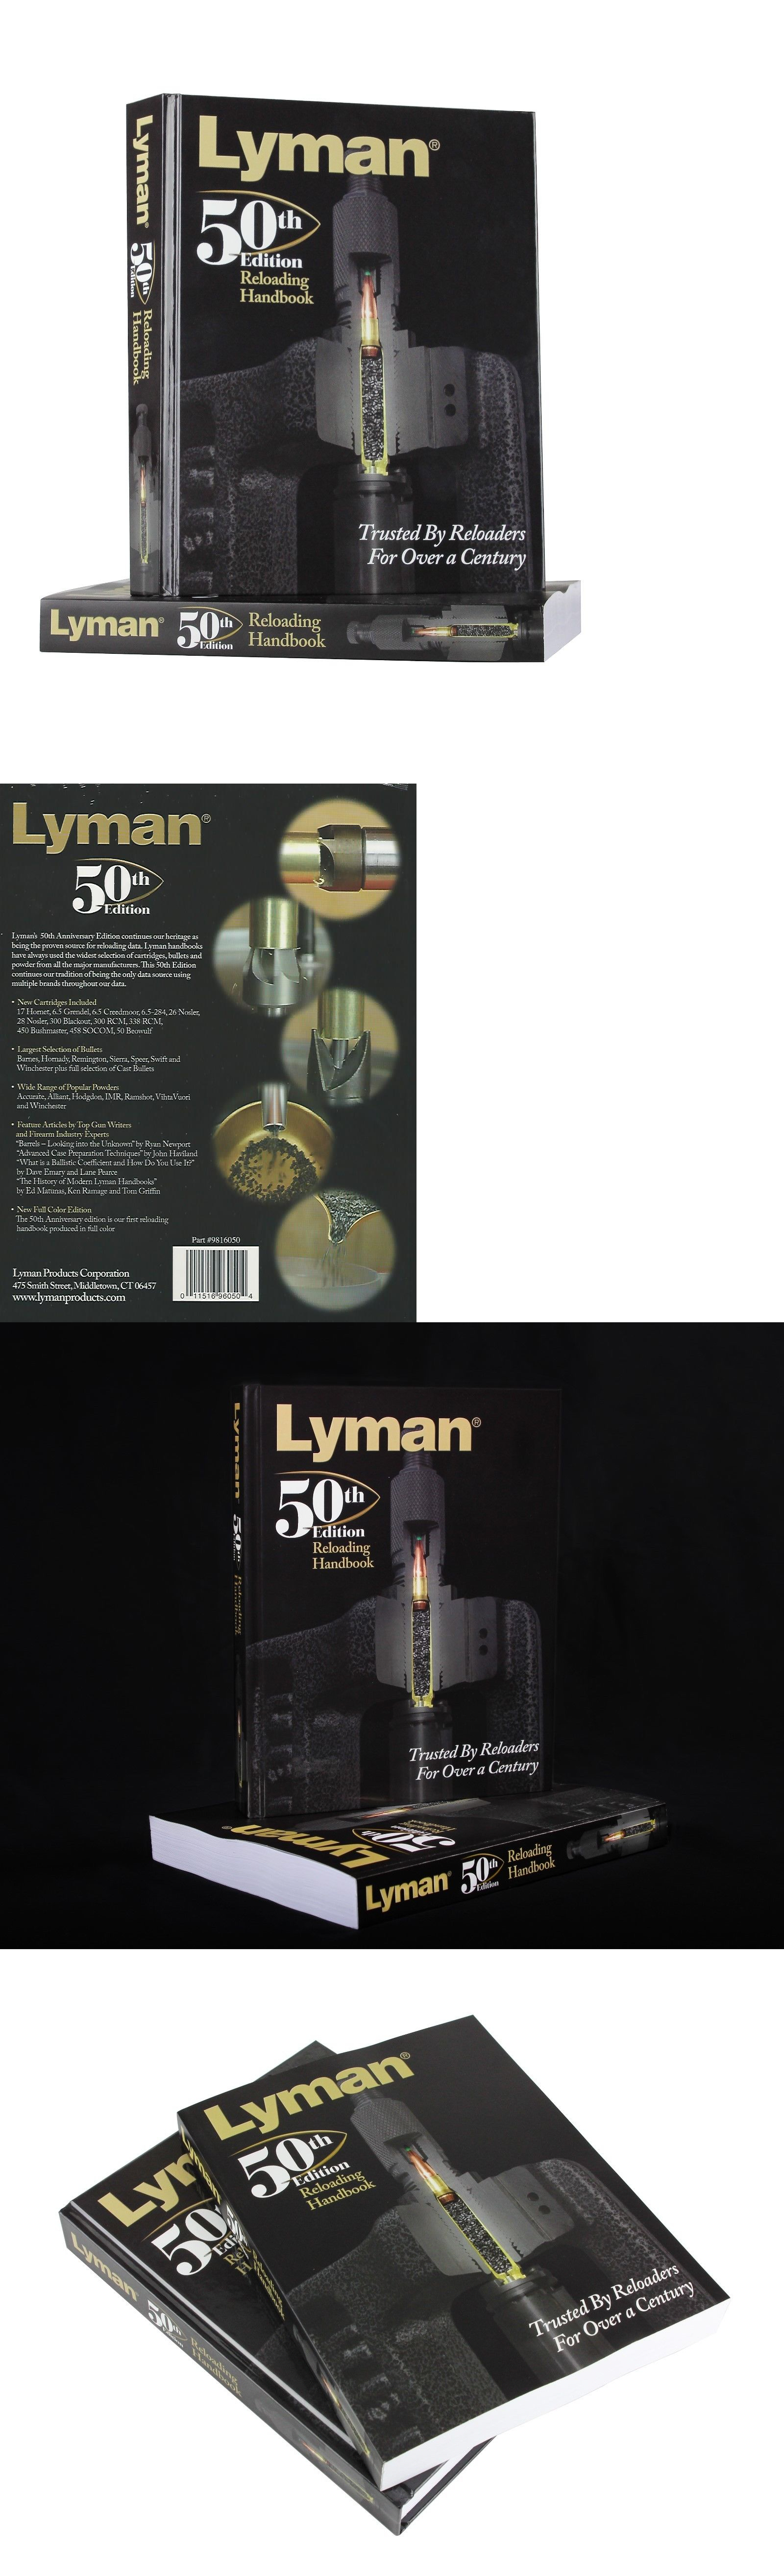 manuals and instruction material 111293 lyman 50th edition rh pinterest com What Should I Buy Off Amazon What Should I Buy Pokemon